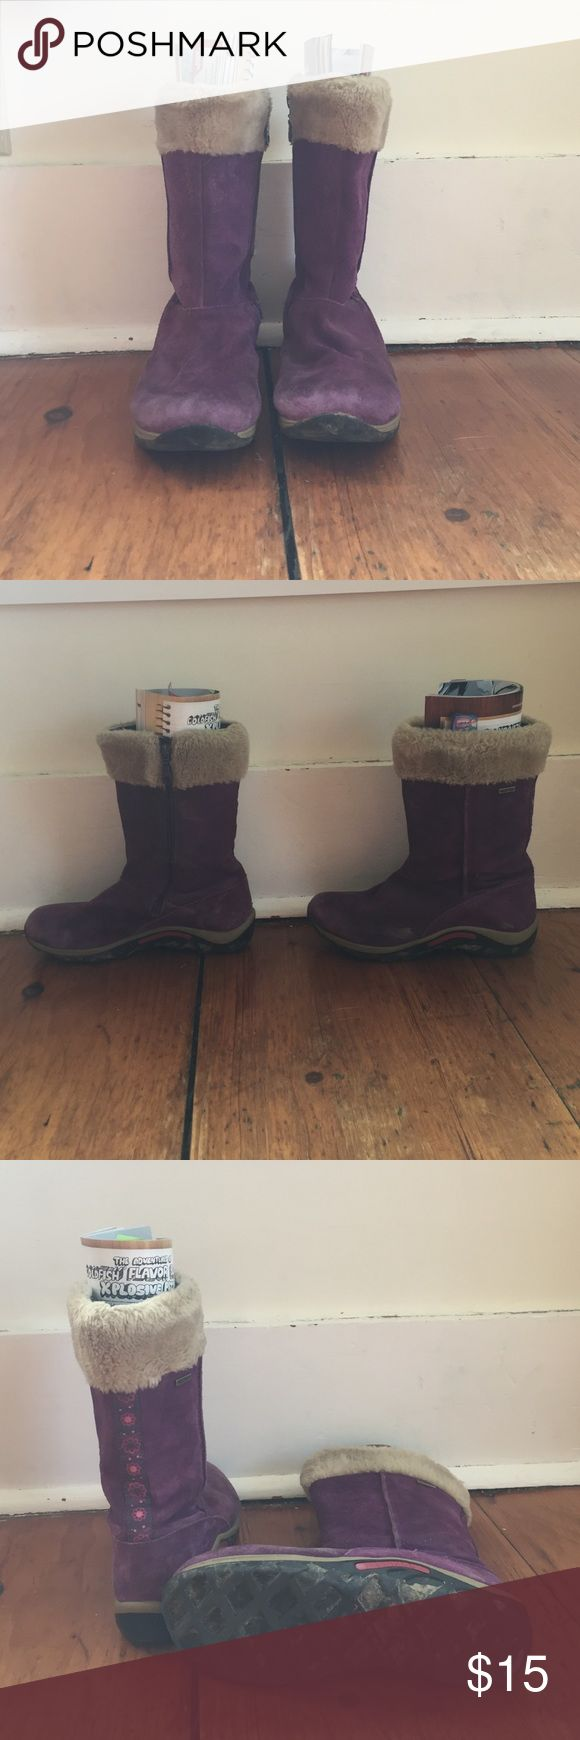 Merrell Kids Winter Boots Purple Merrell youth winter boots. Worn for one season, have some creases. Merrell Shoes Rain & Snow Boots